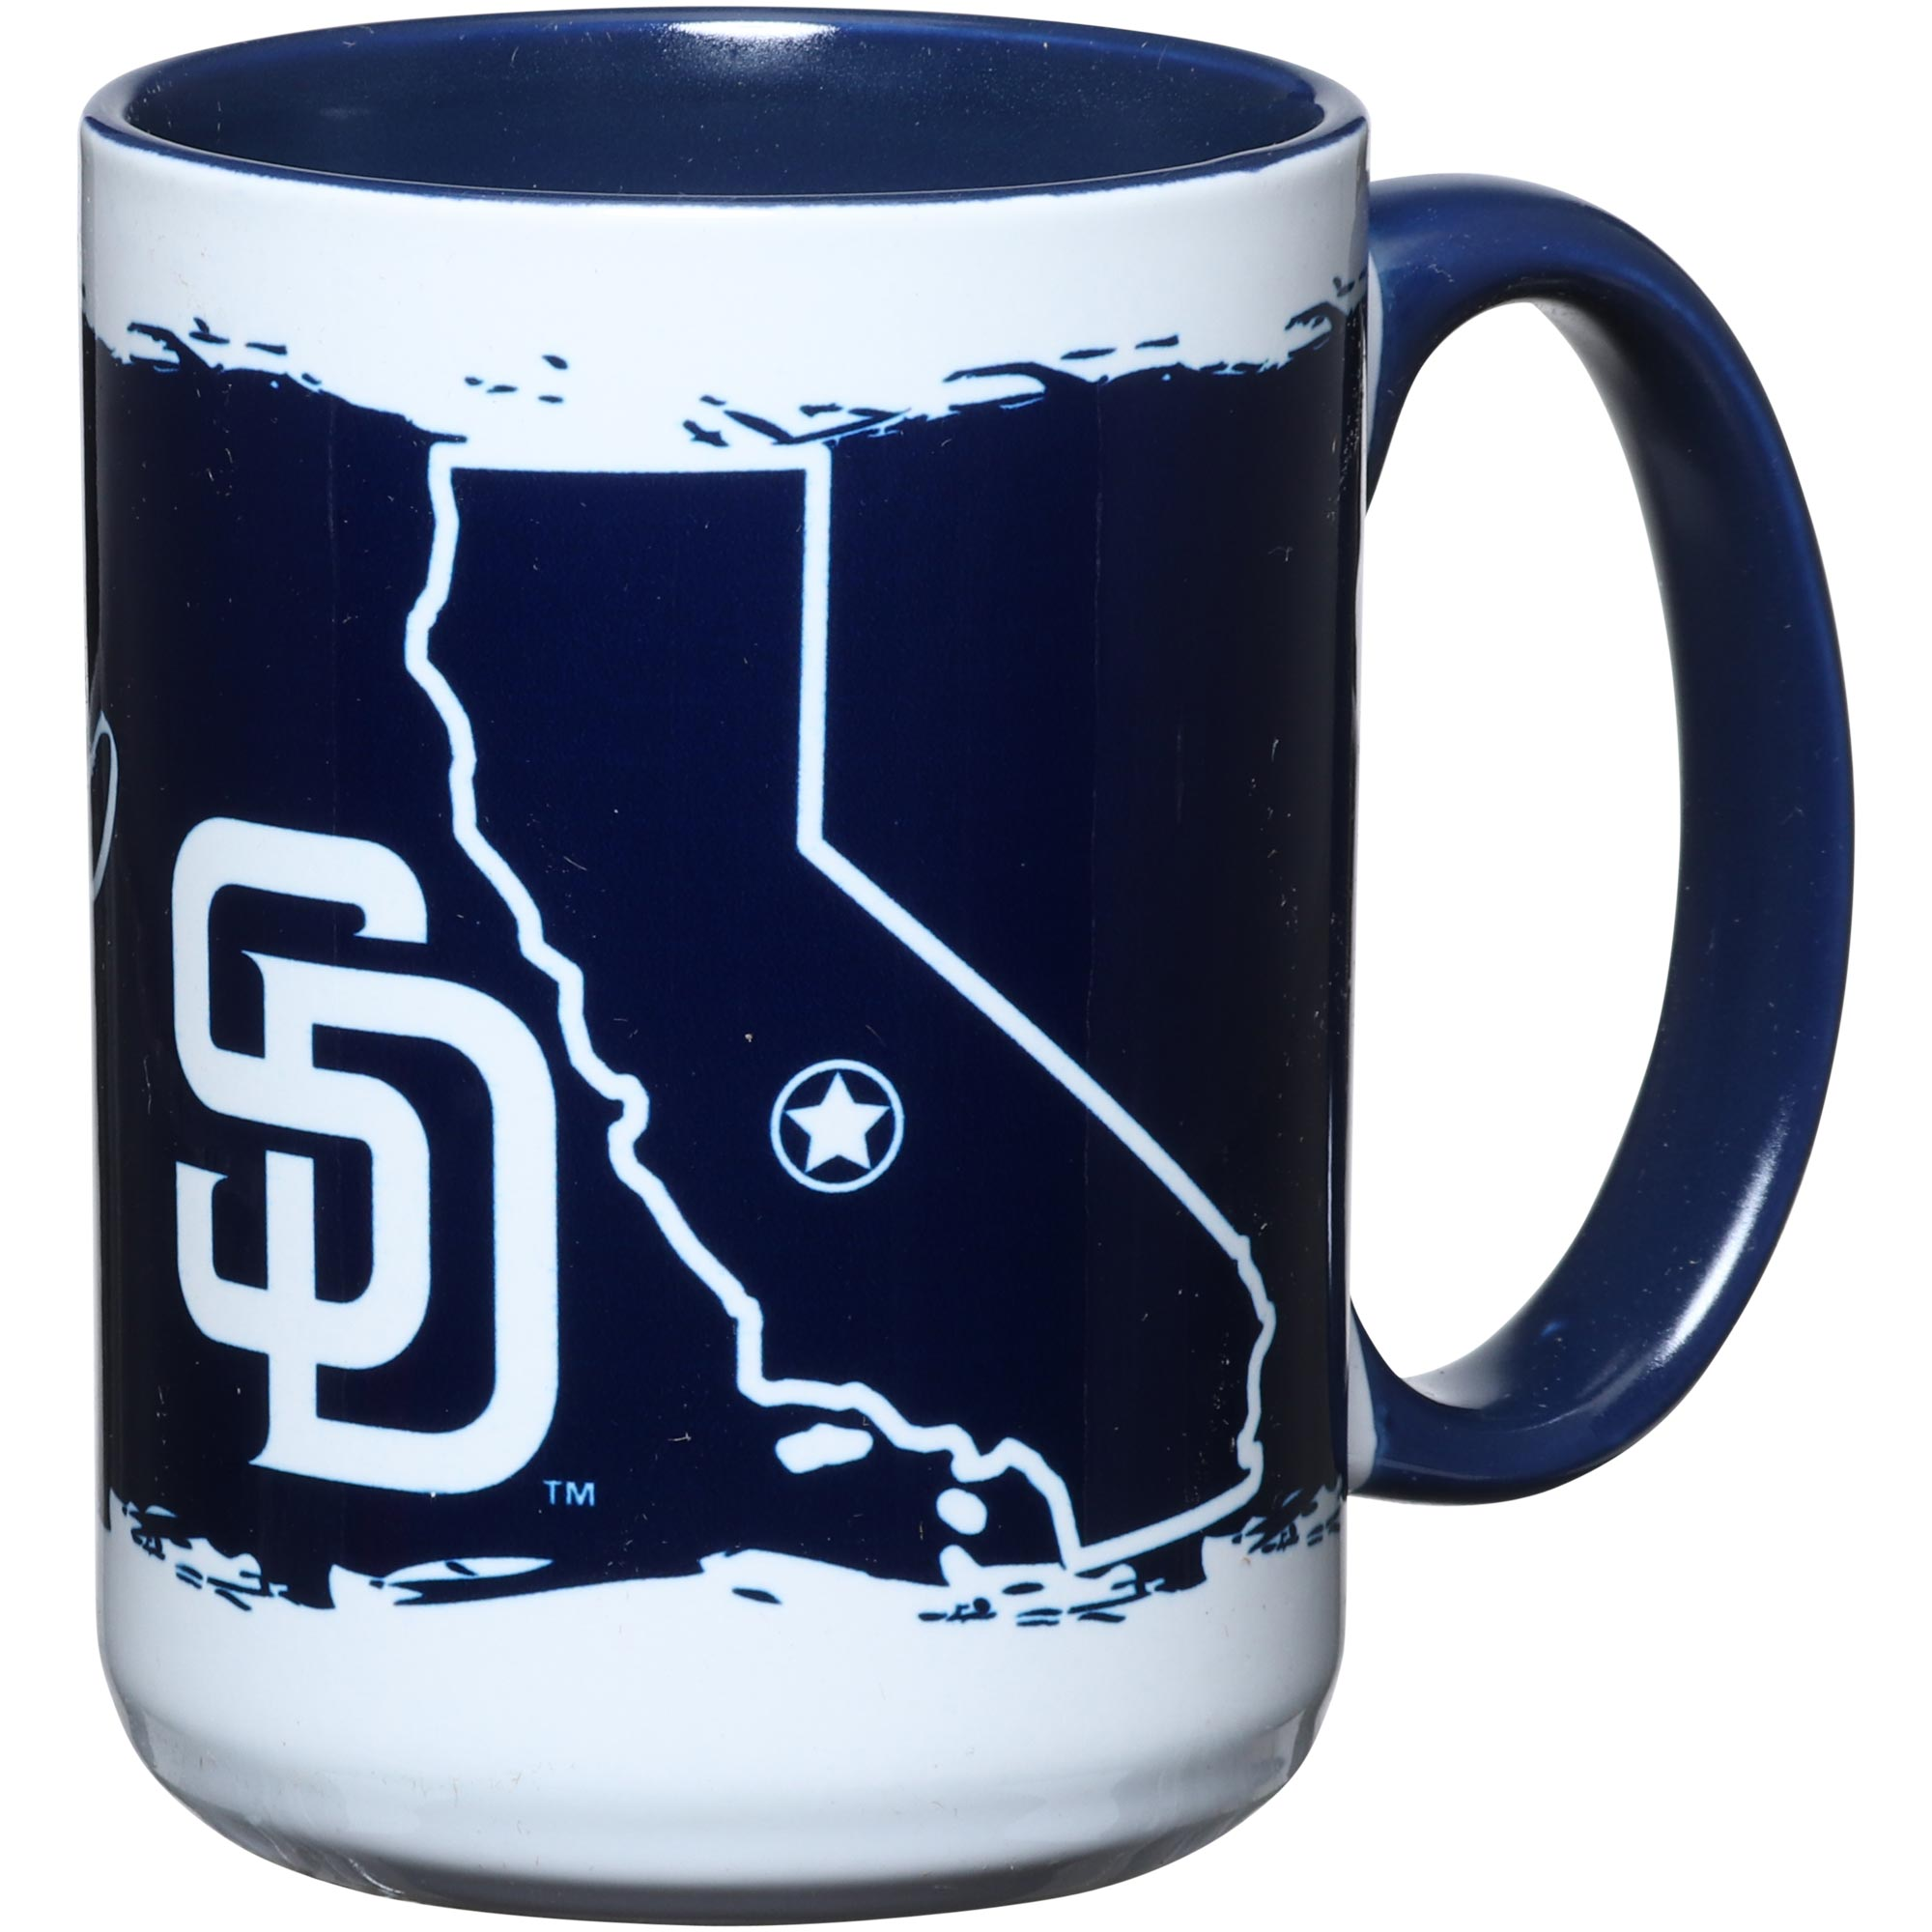 San Diego Padres 15oz. It's Your State Of Mind Mug - No Size